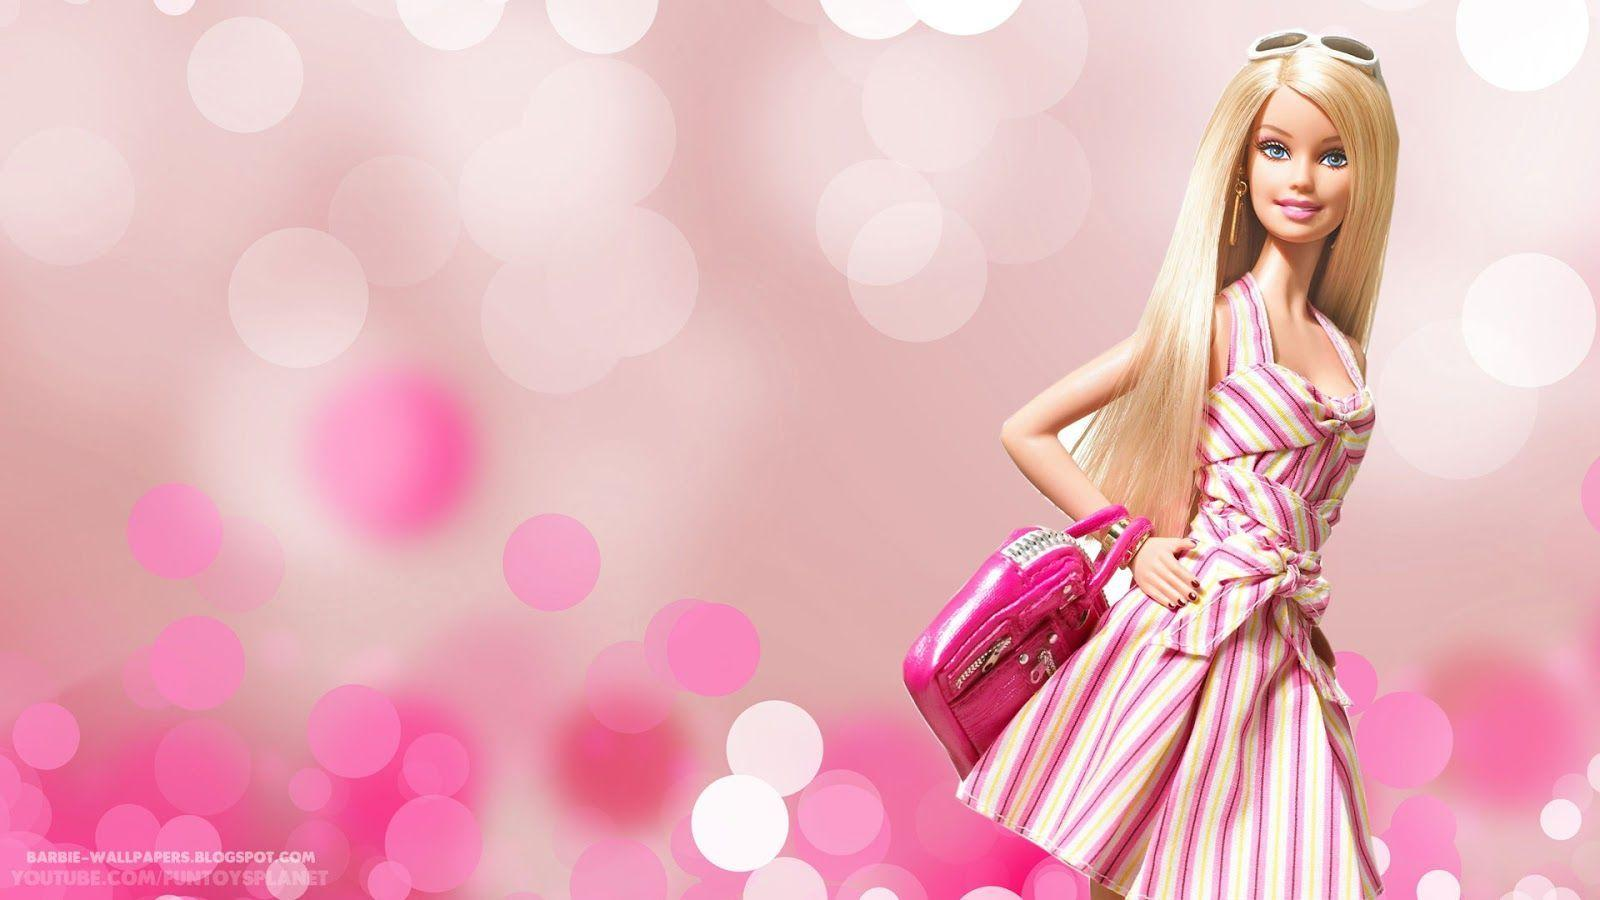 Barbie Wallpaper Hd: New Barbie Wallpapers 2016